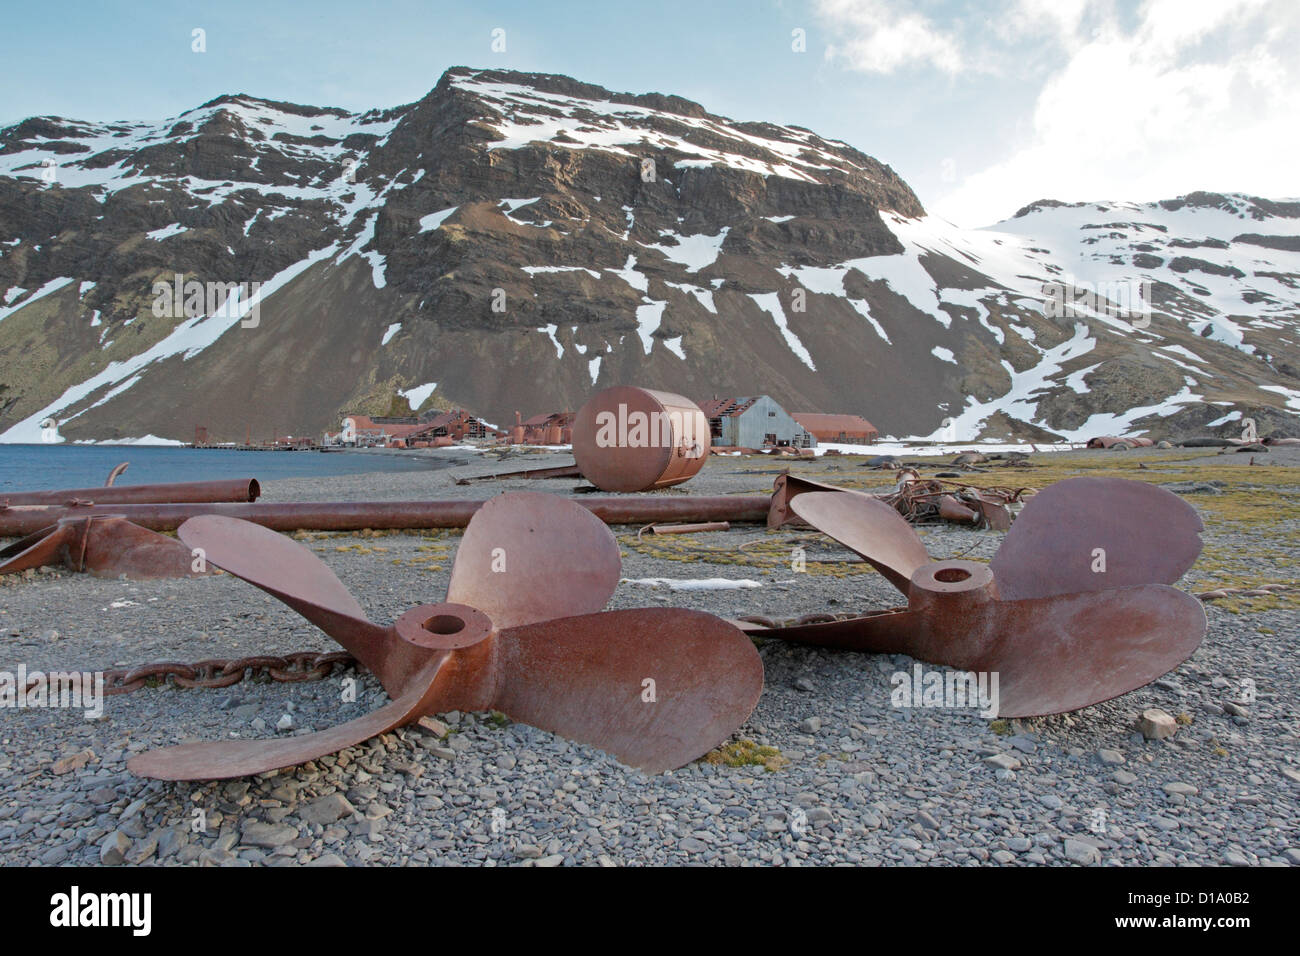 View of derelict Stromness whaling station showing old propellers - Stock Image